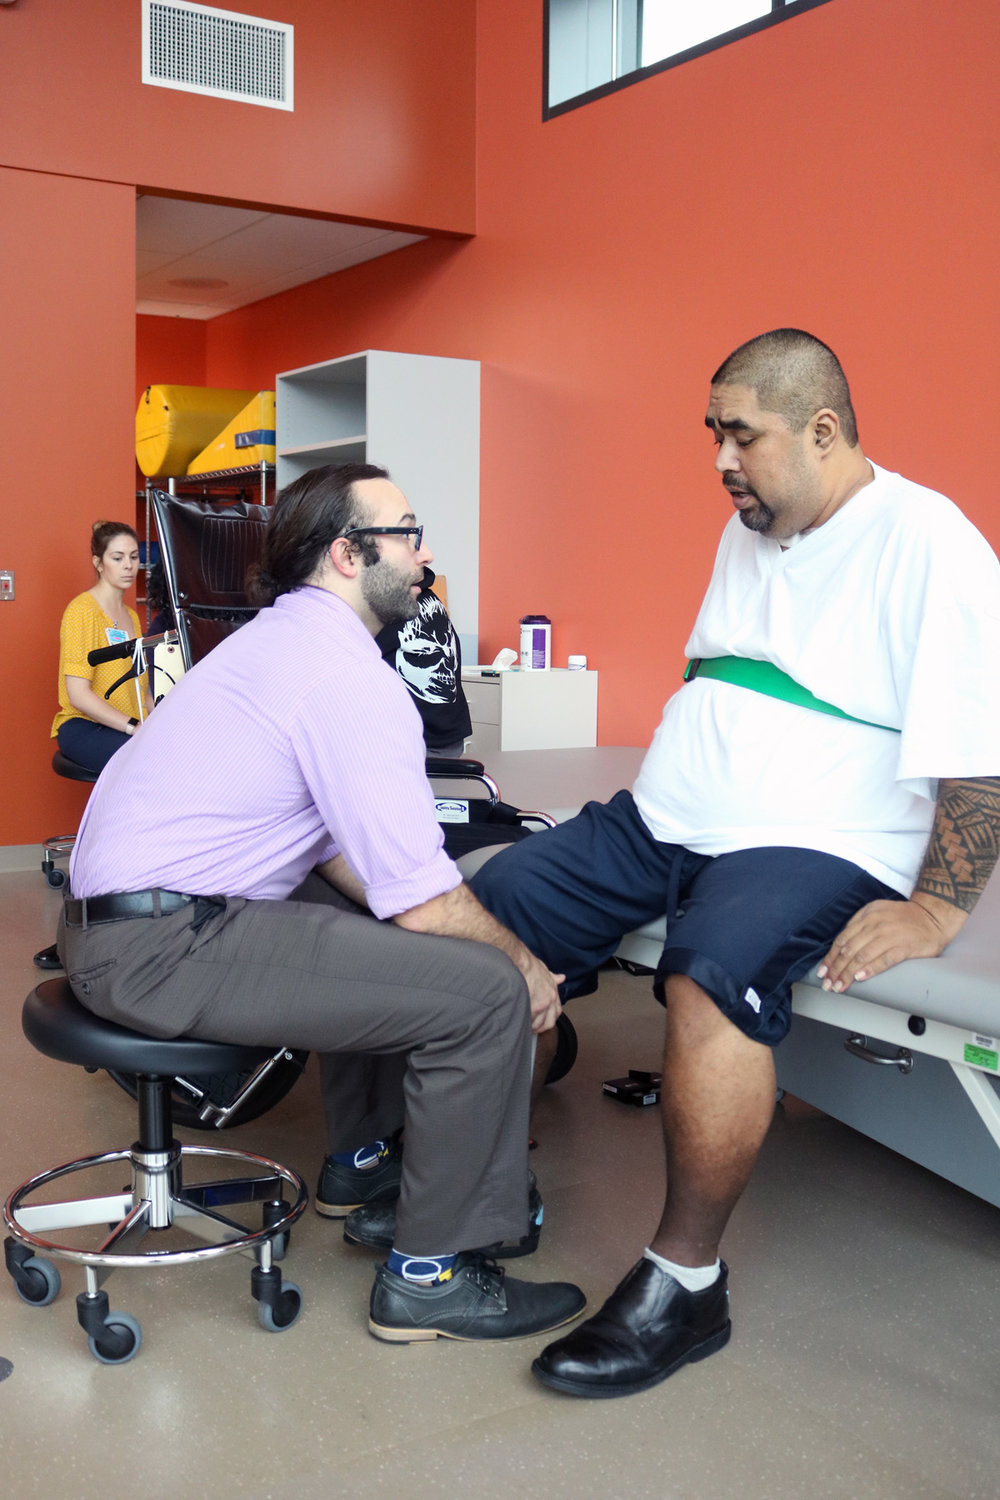 PHOTO BY ALEX DOMINGUEZ   A patient goes through physical therapy at Rancho's new outpatient building.